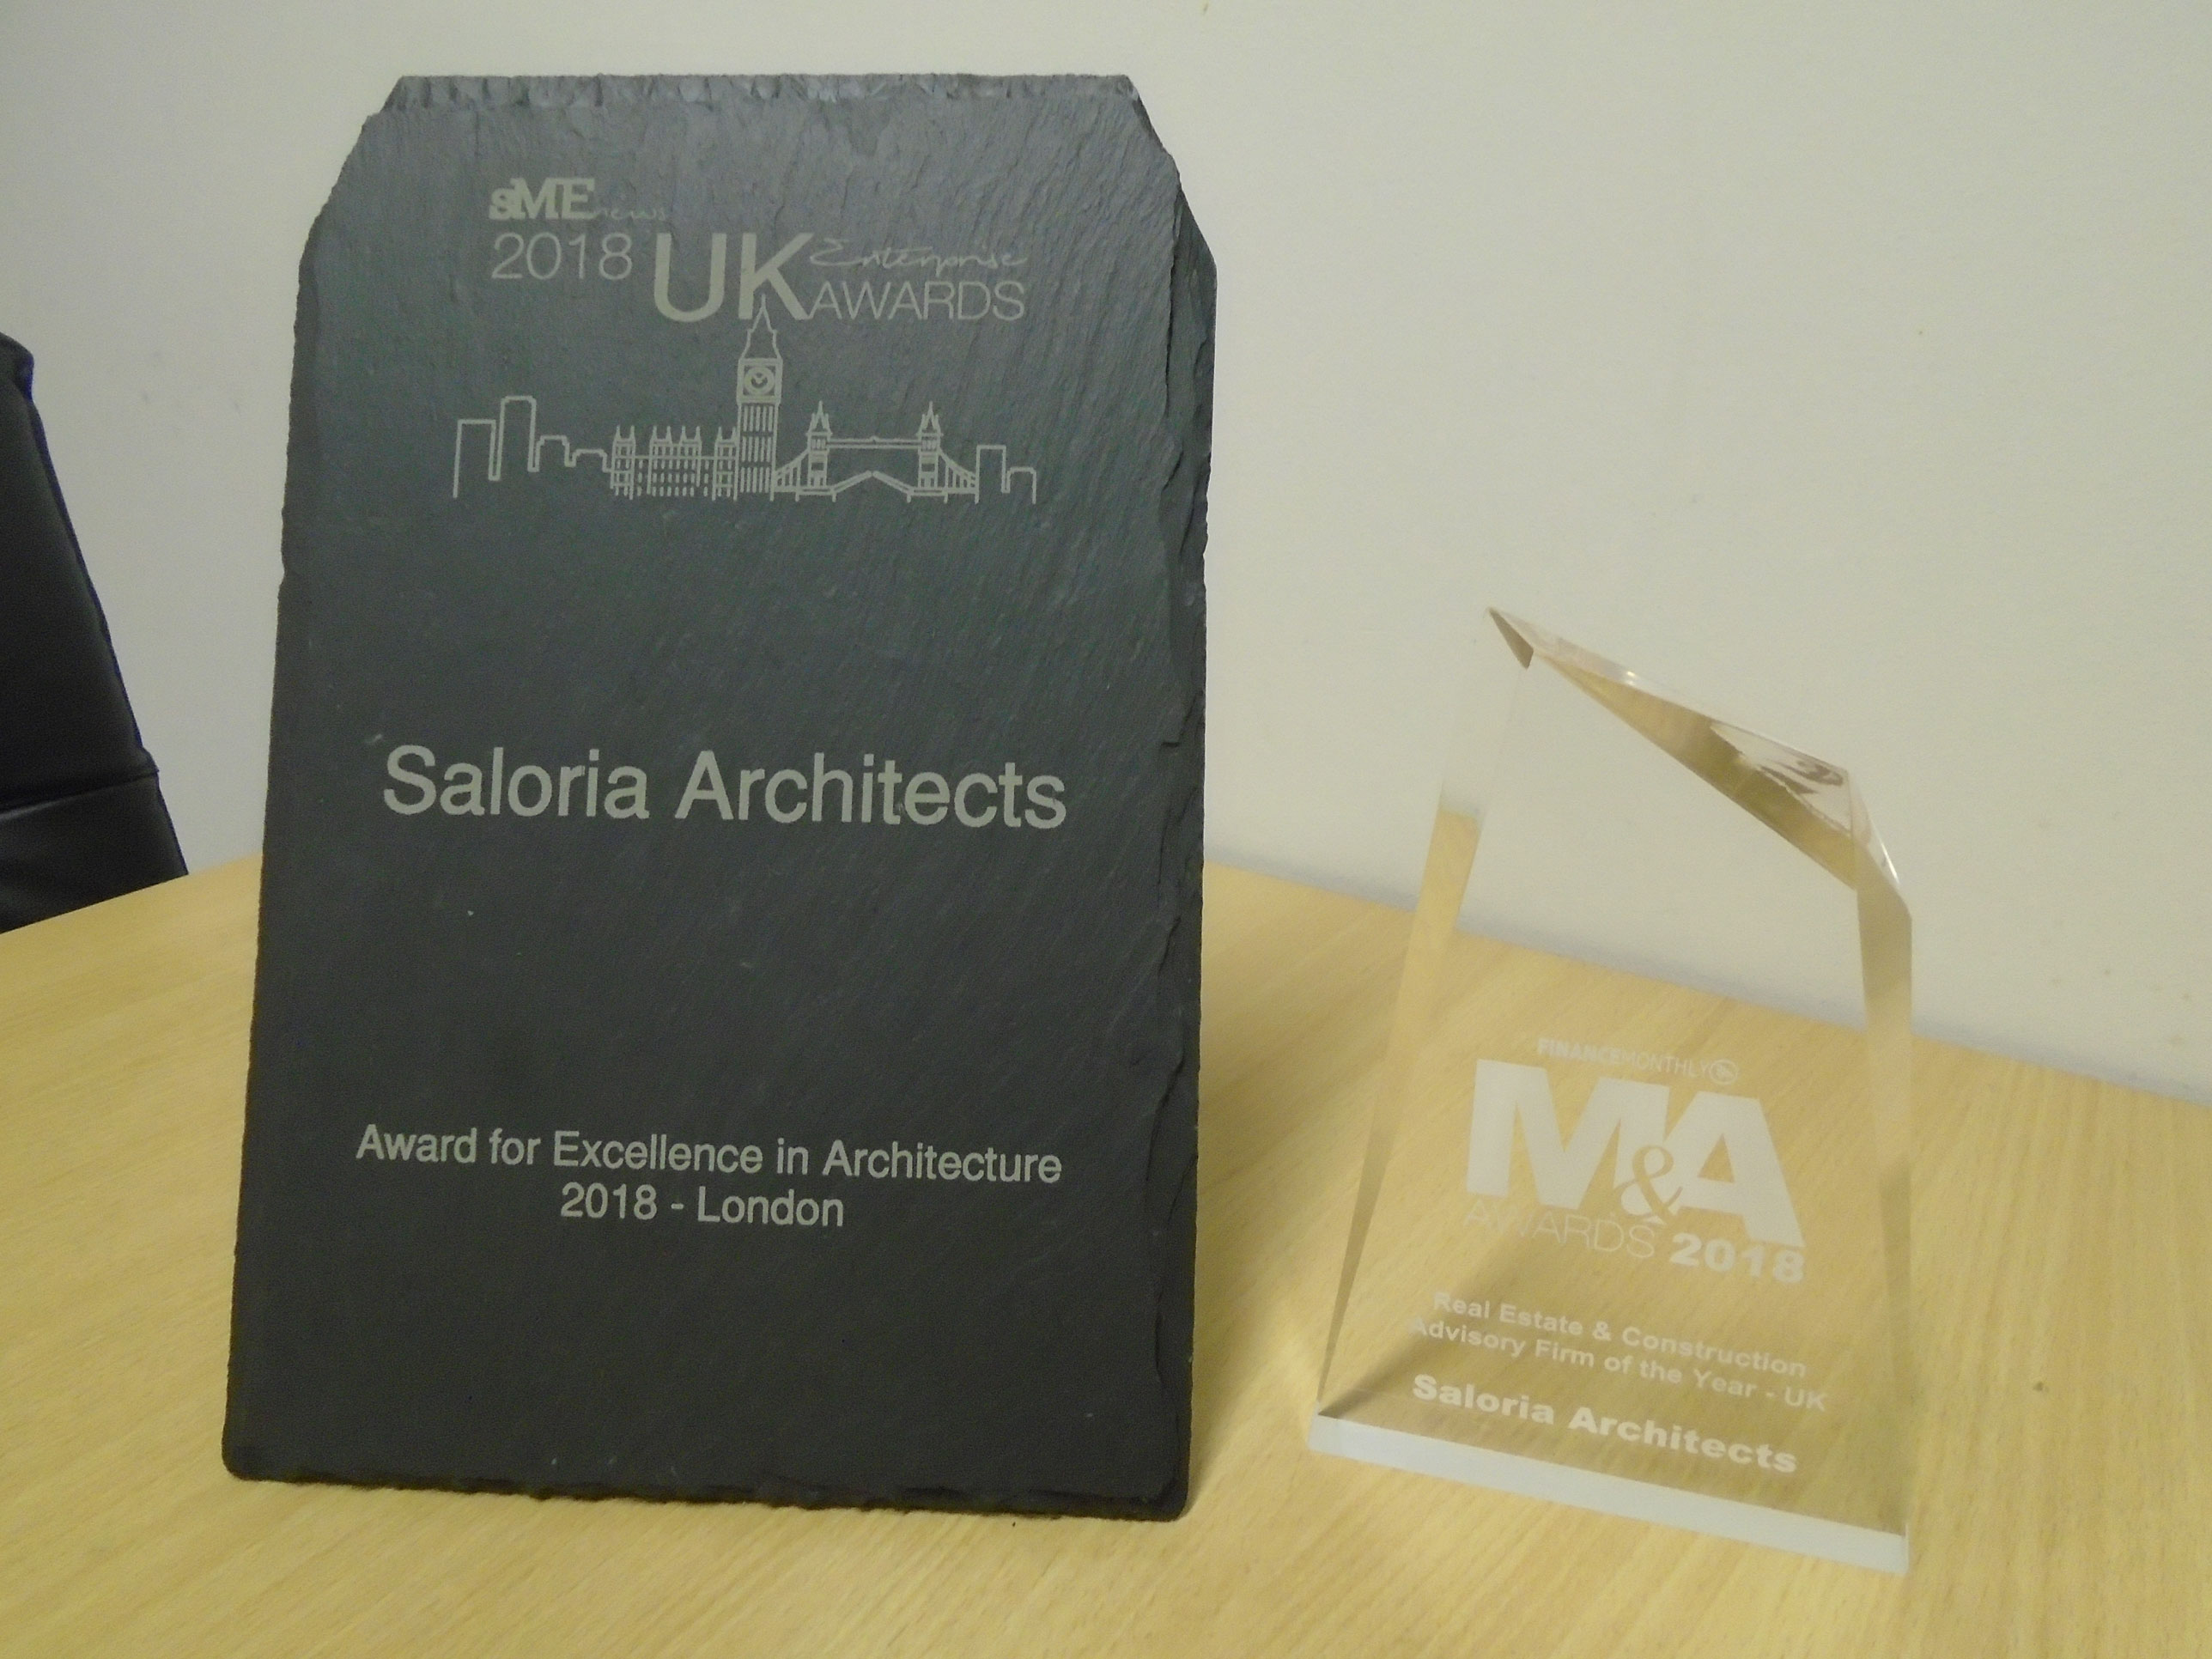 Best in Architectural Services 2020